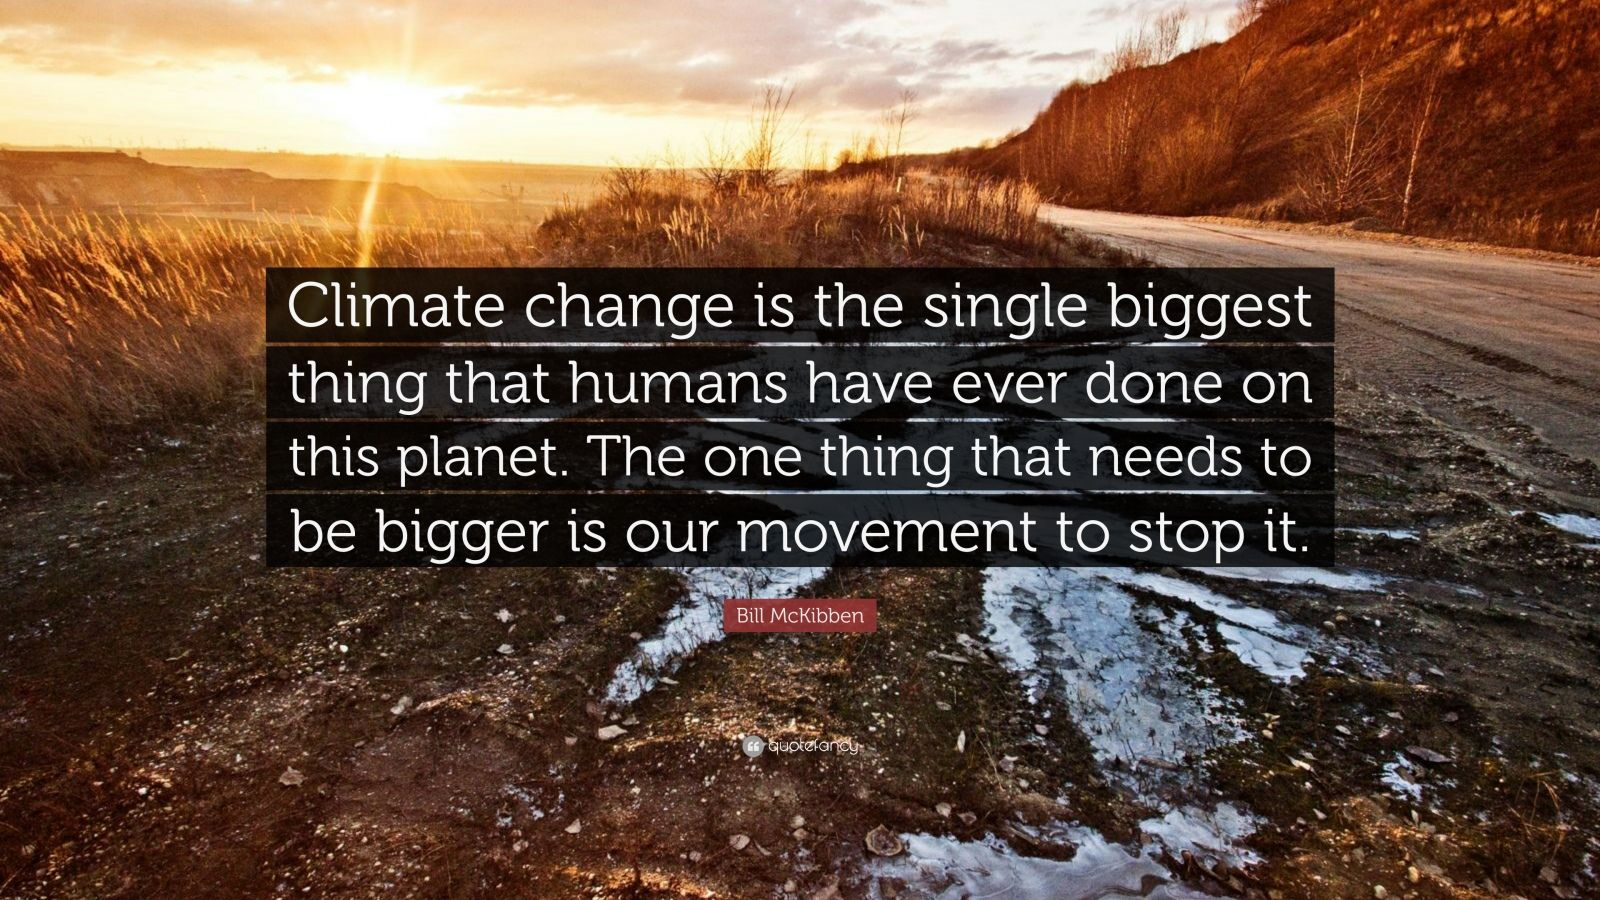 """Bill McKibben Quote: """"Climate change is the single biggest thing that humans have ever done on this planet. The one thing that needs to be bigger is our movement to stop it."""""""